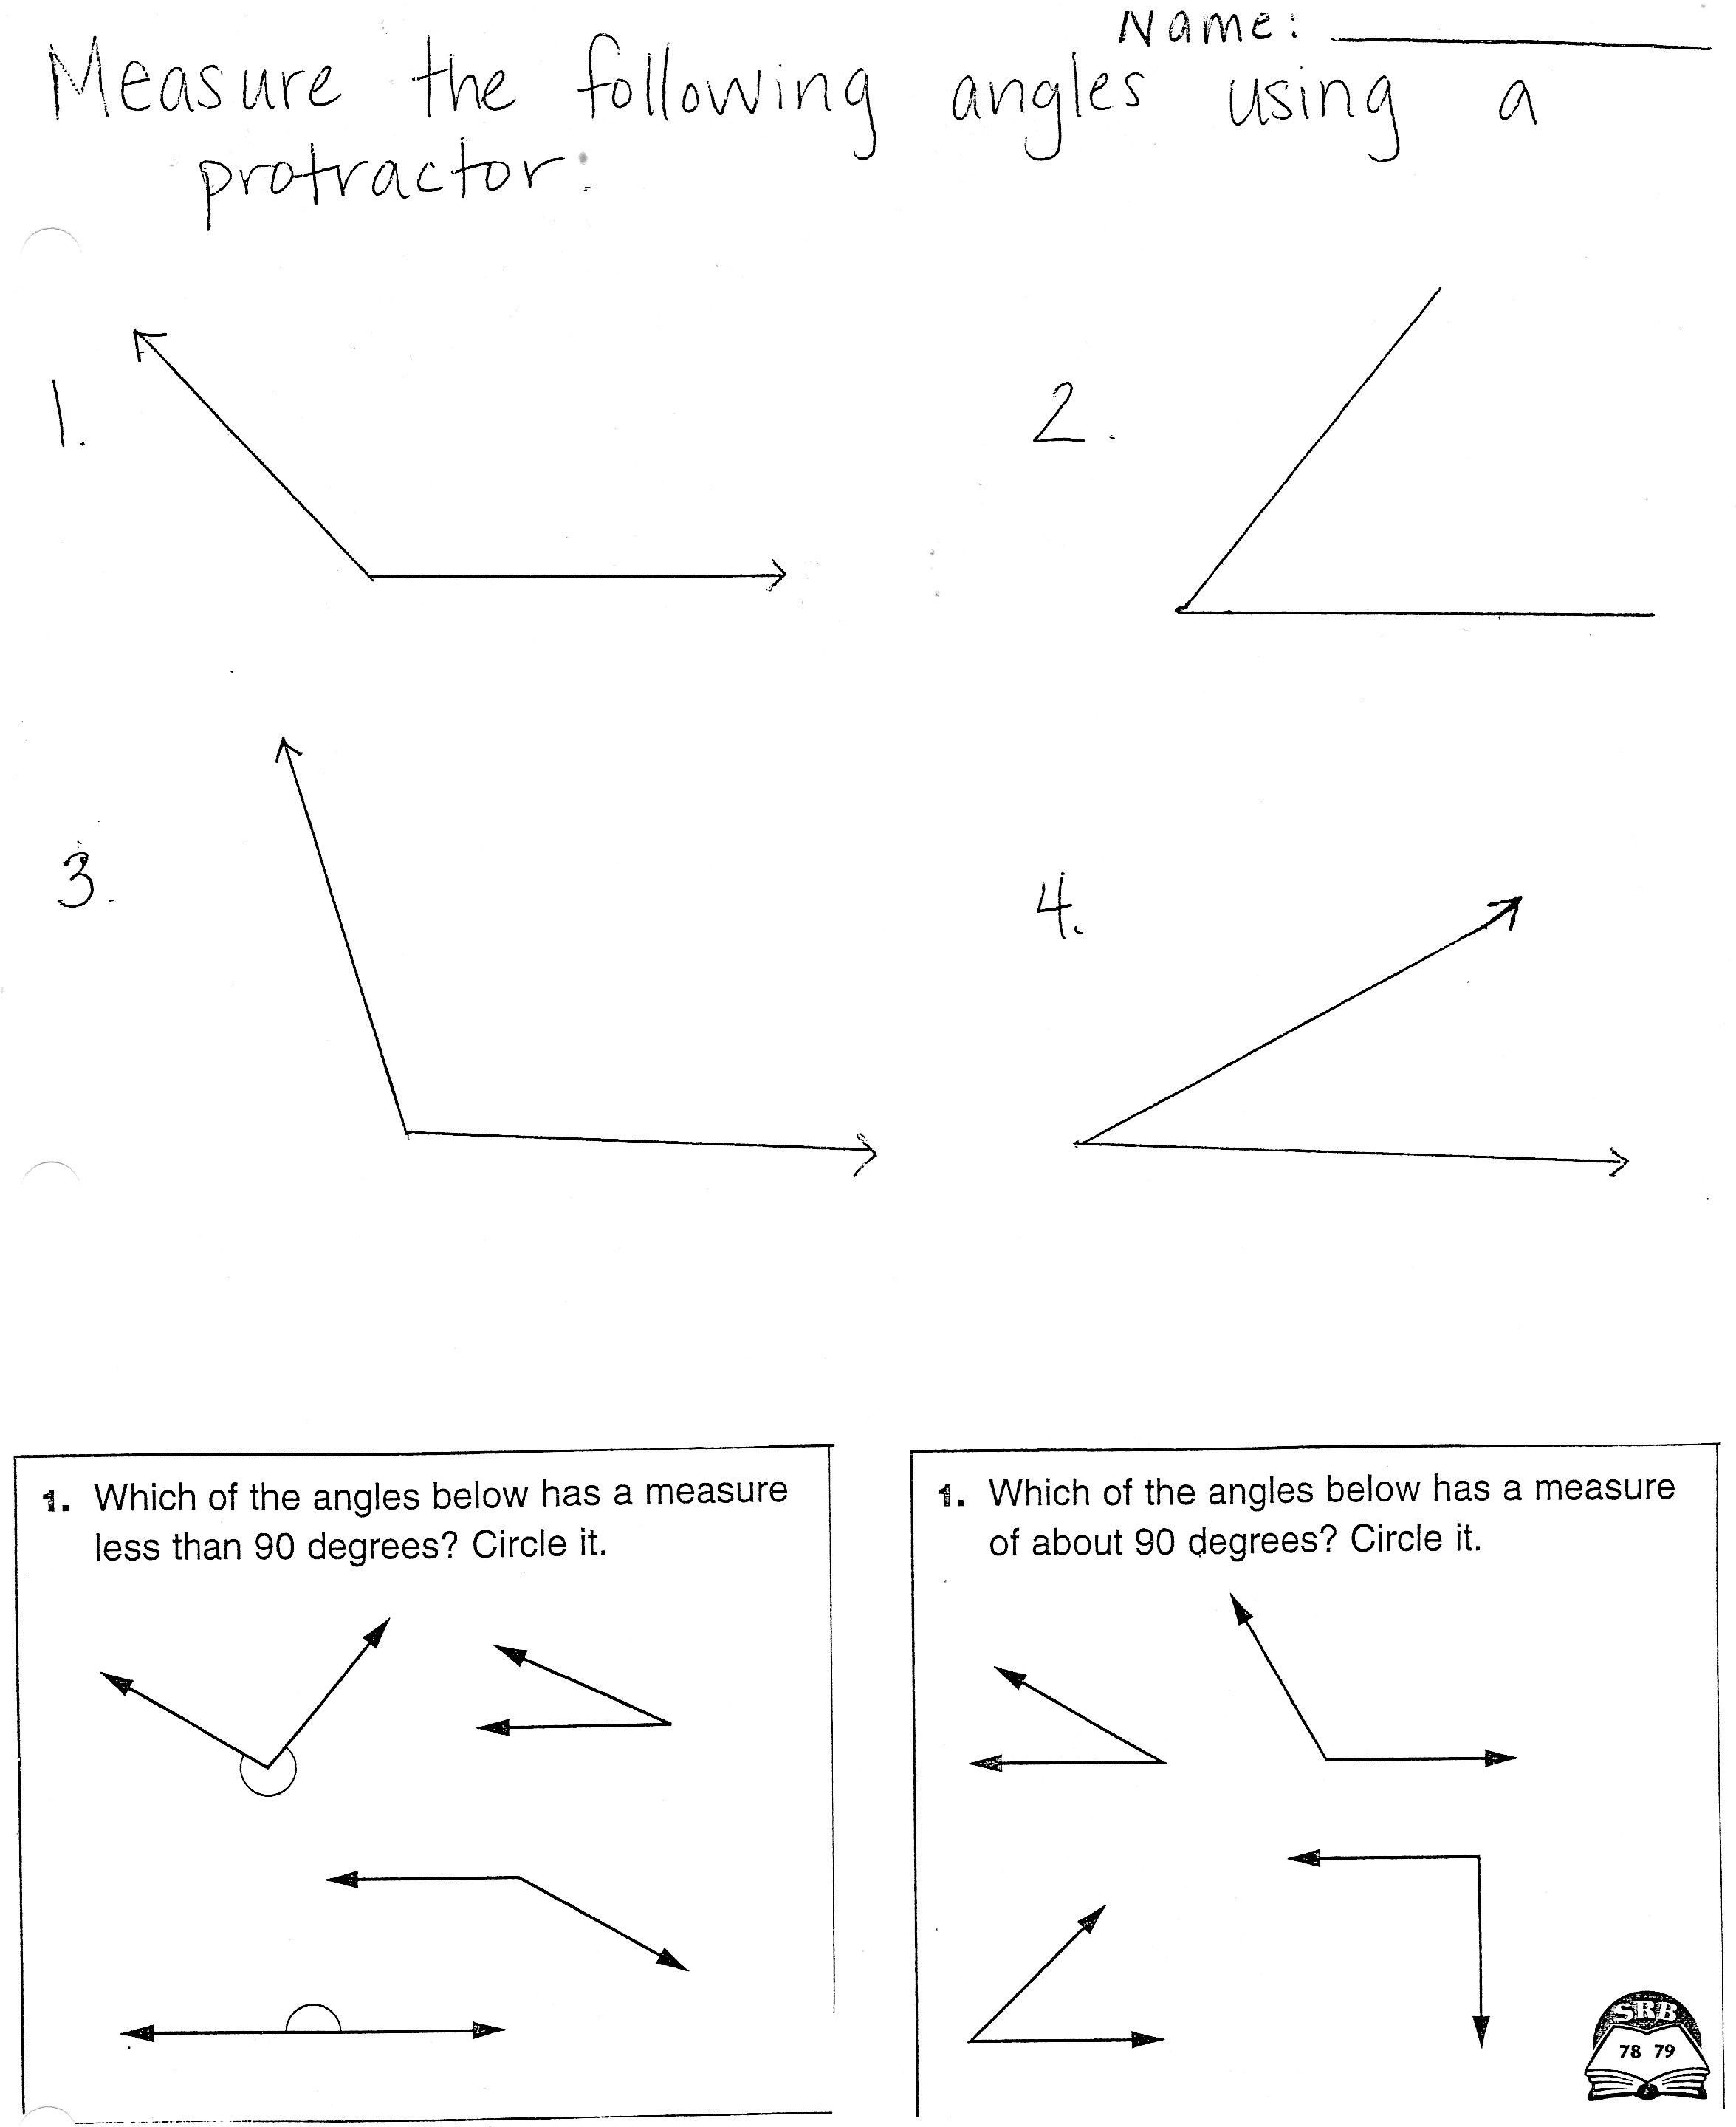 Comfortable Reference Common Dimensions Angles And Heights